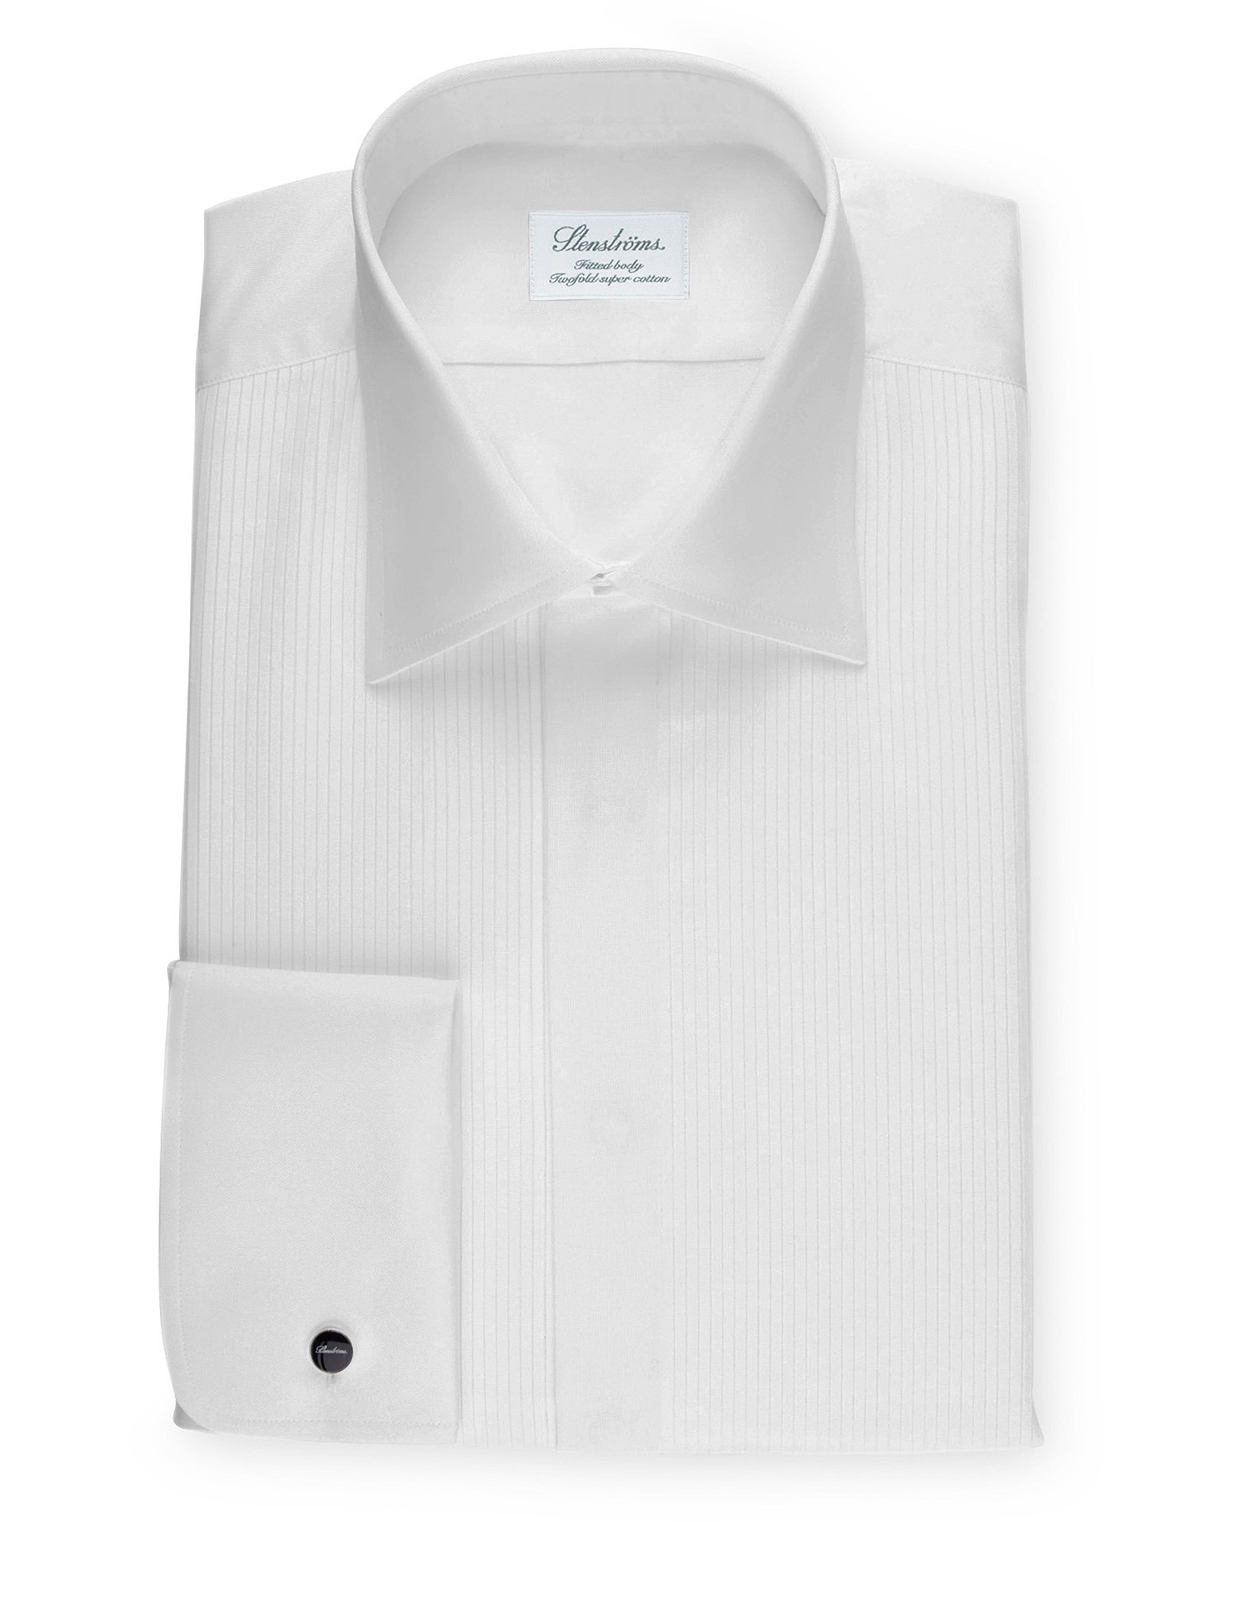 White Fitted Body Tuxedo Shirt With Classic Collar Vit Stl 44